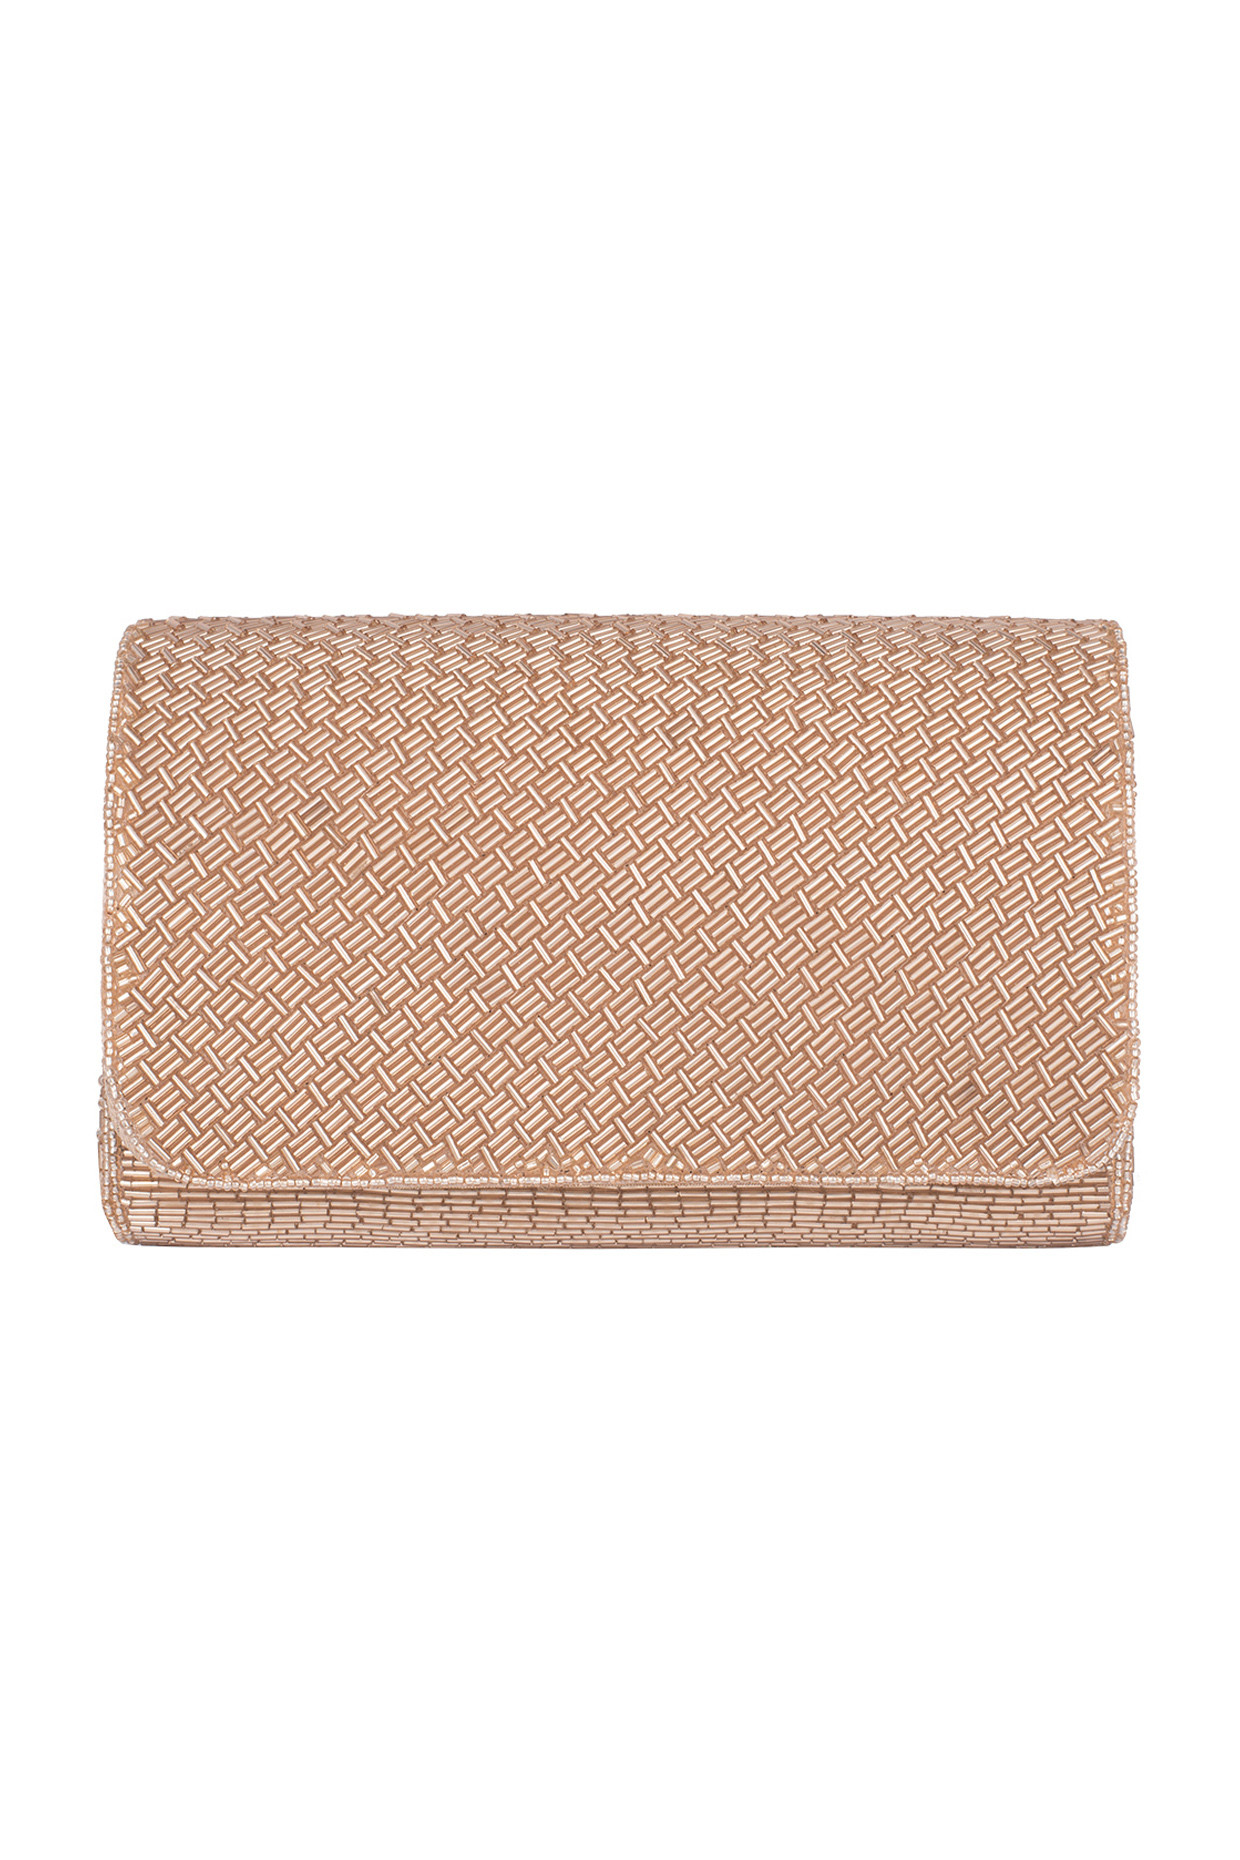 Nude Embroidered Box Clutch by Sonnet